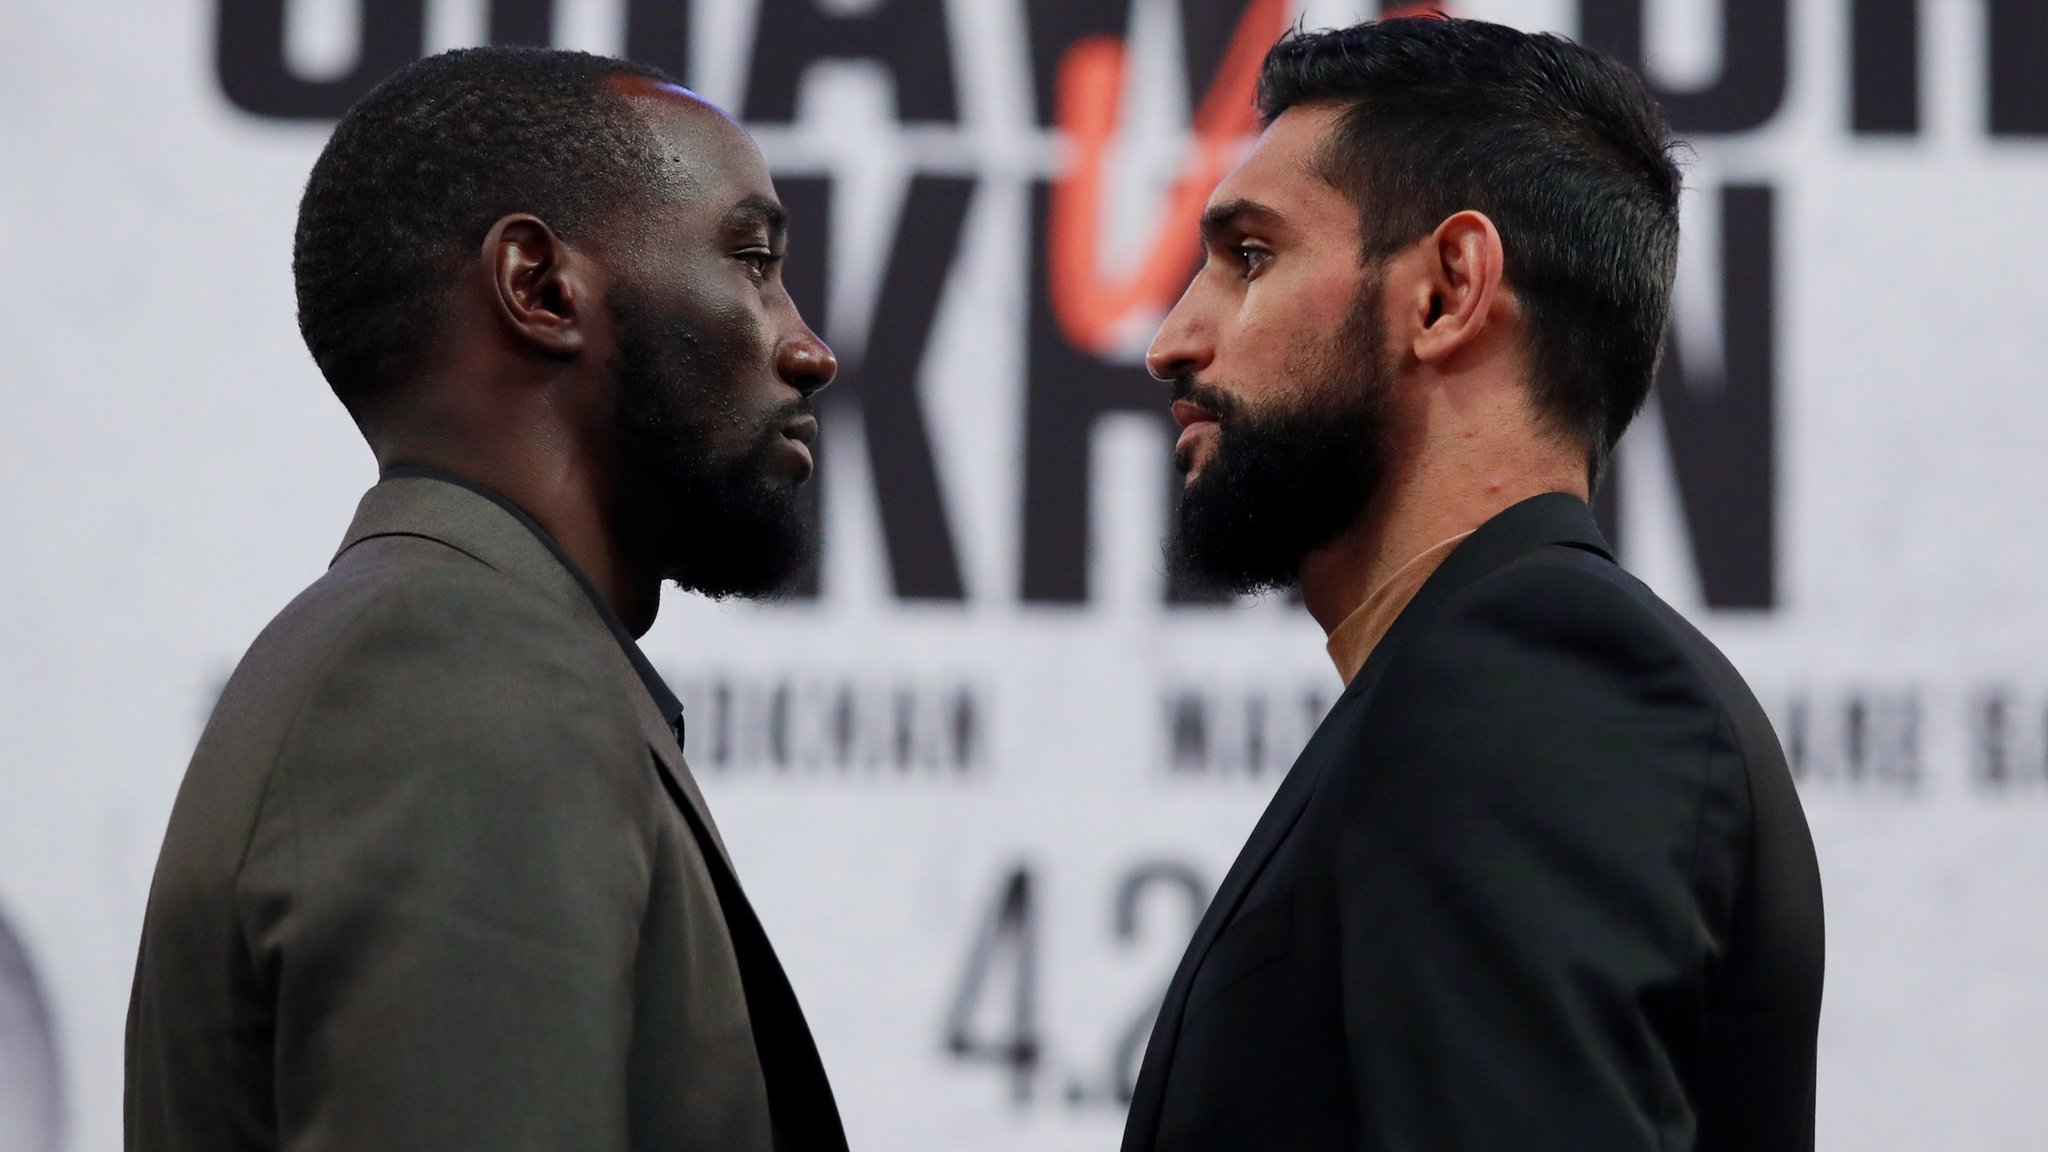 I can't make any mistakes against Crawford - Khan